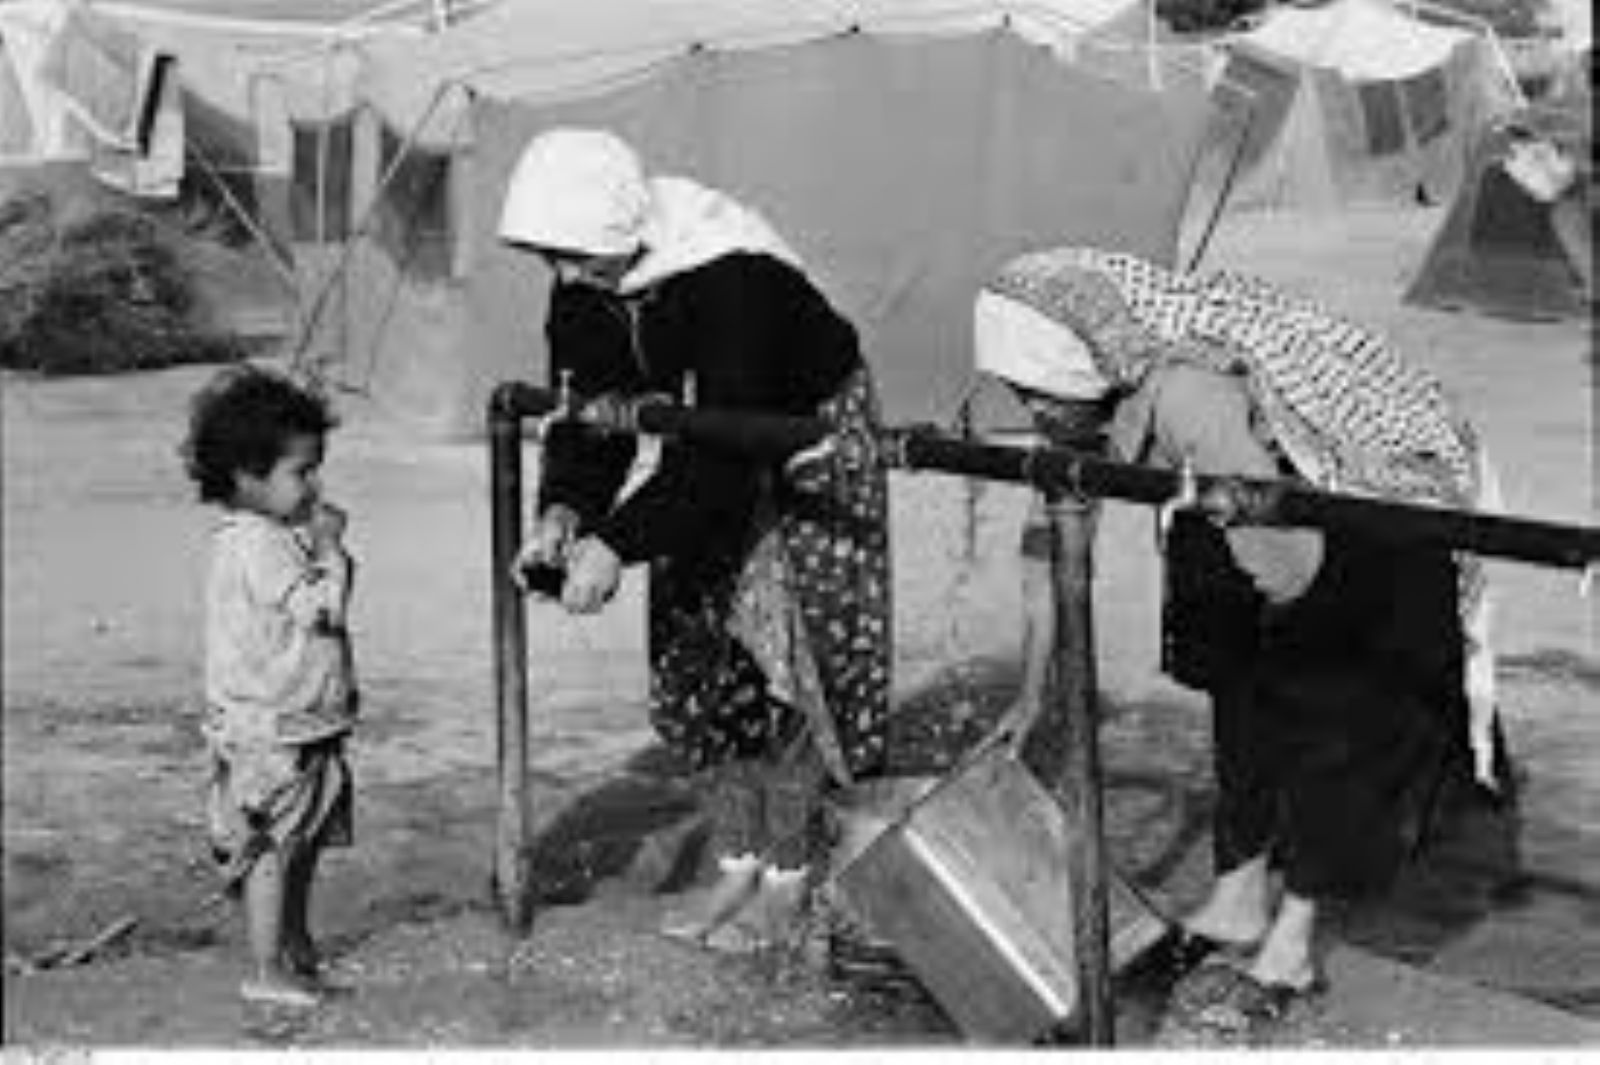 Israel displaced 67% of Palestinians in 1948